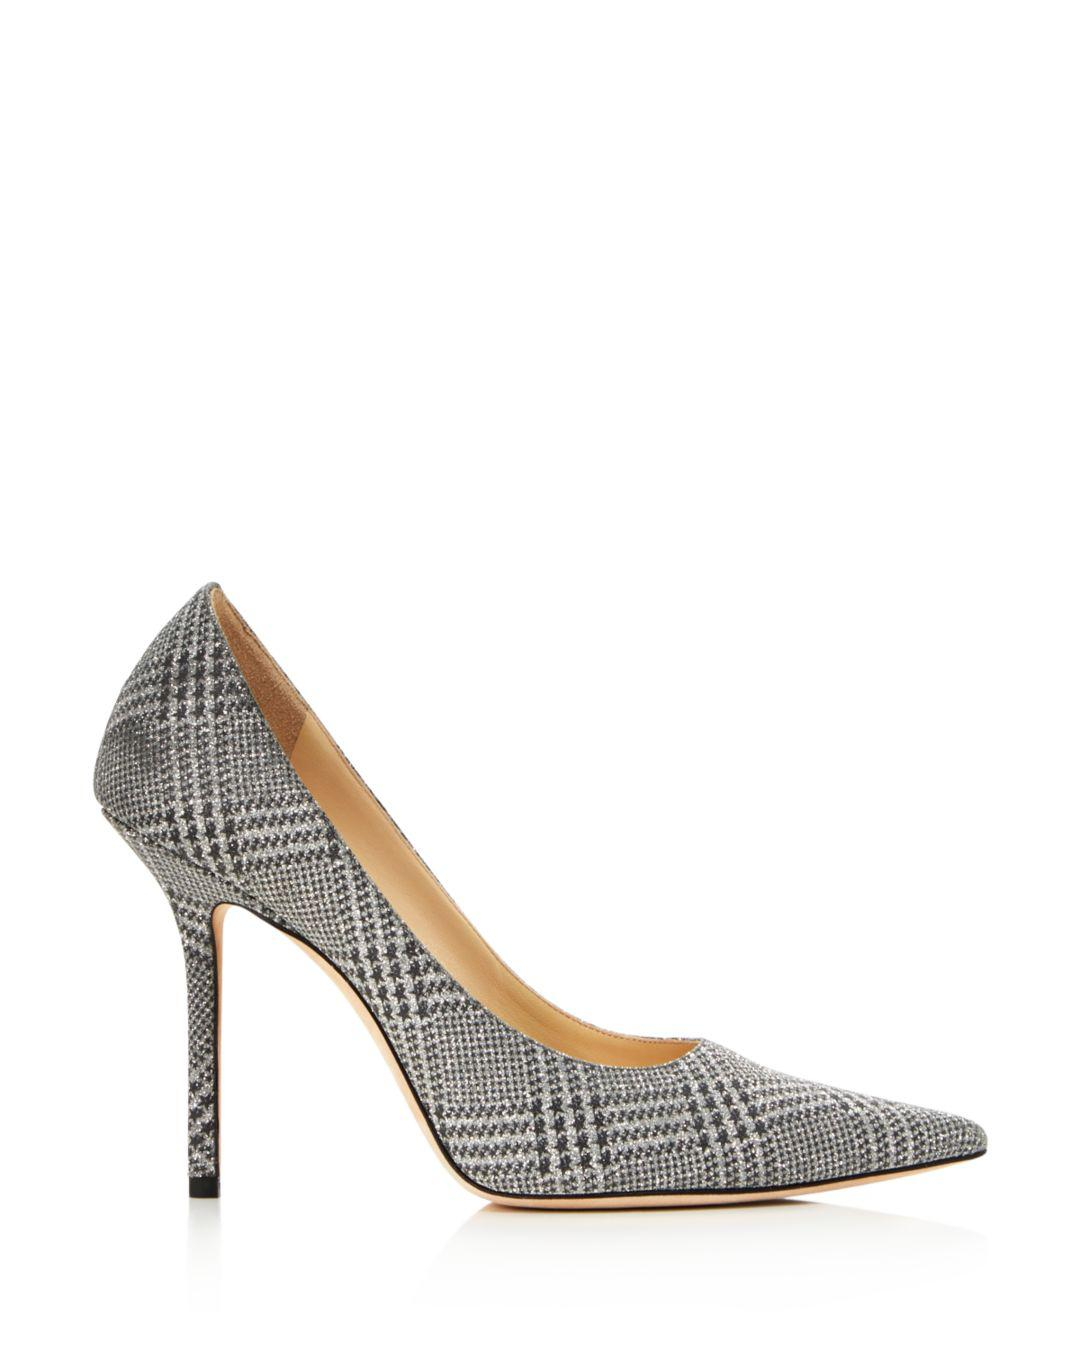 acf4a598315 Lyst - Jimmy Choo Women s Love 100 Pointed Toe Checkered Pumps in Metallic